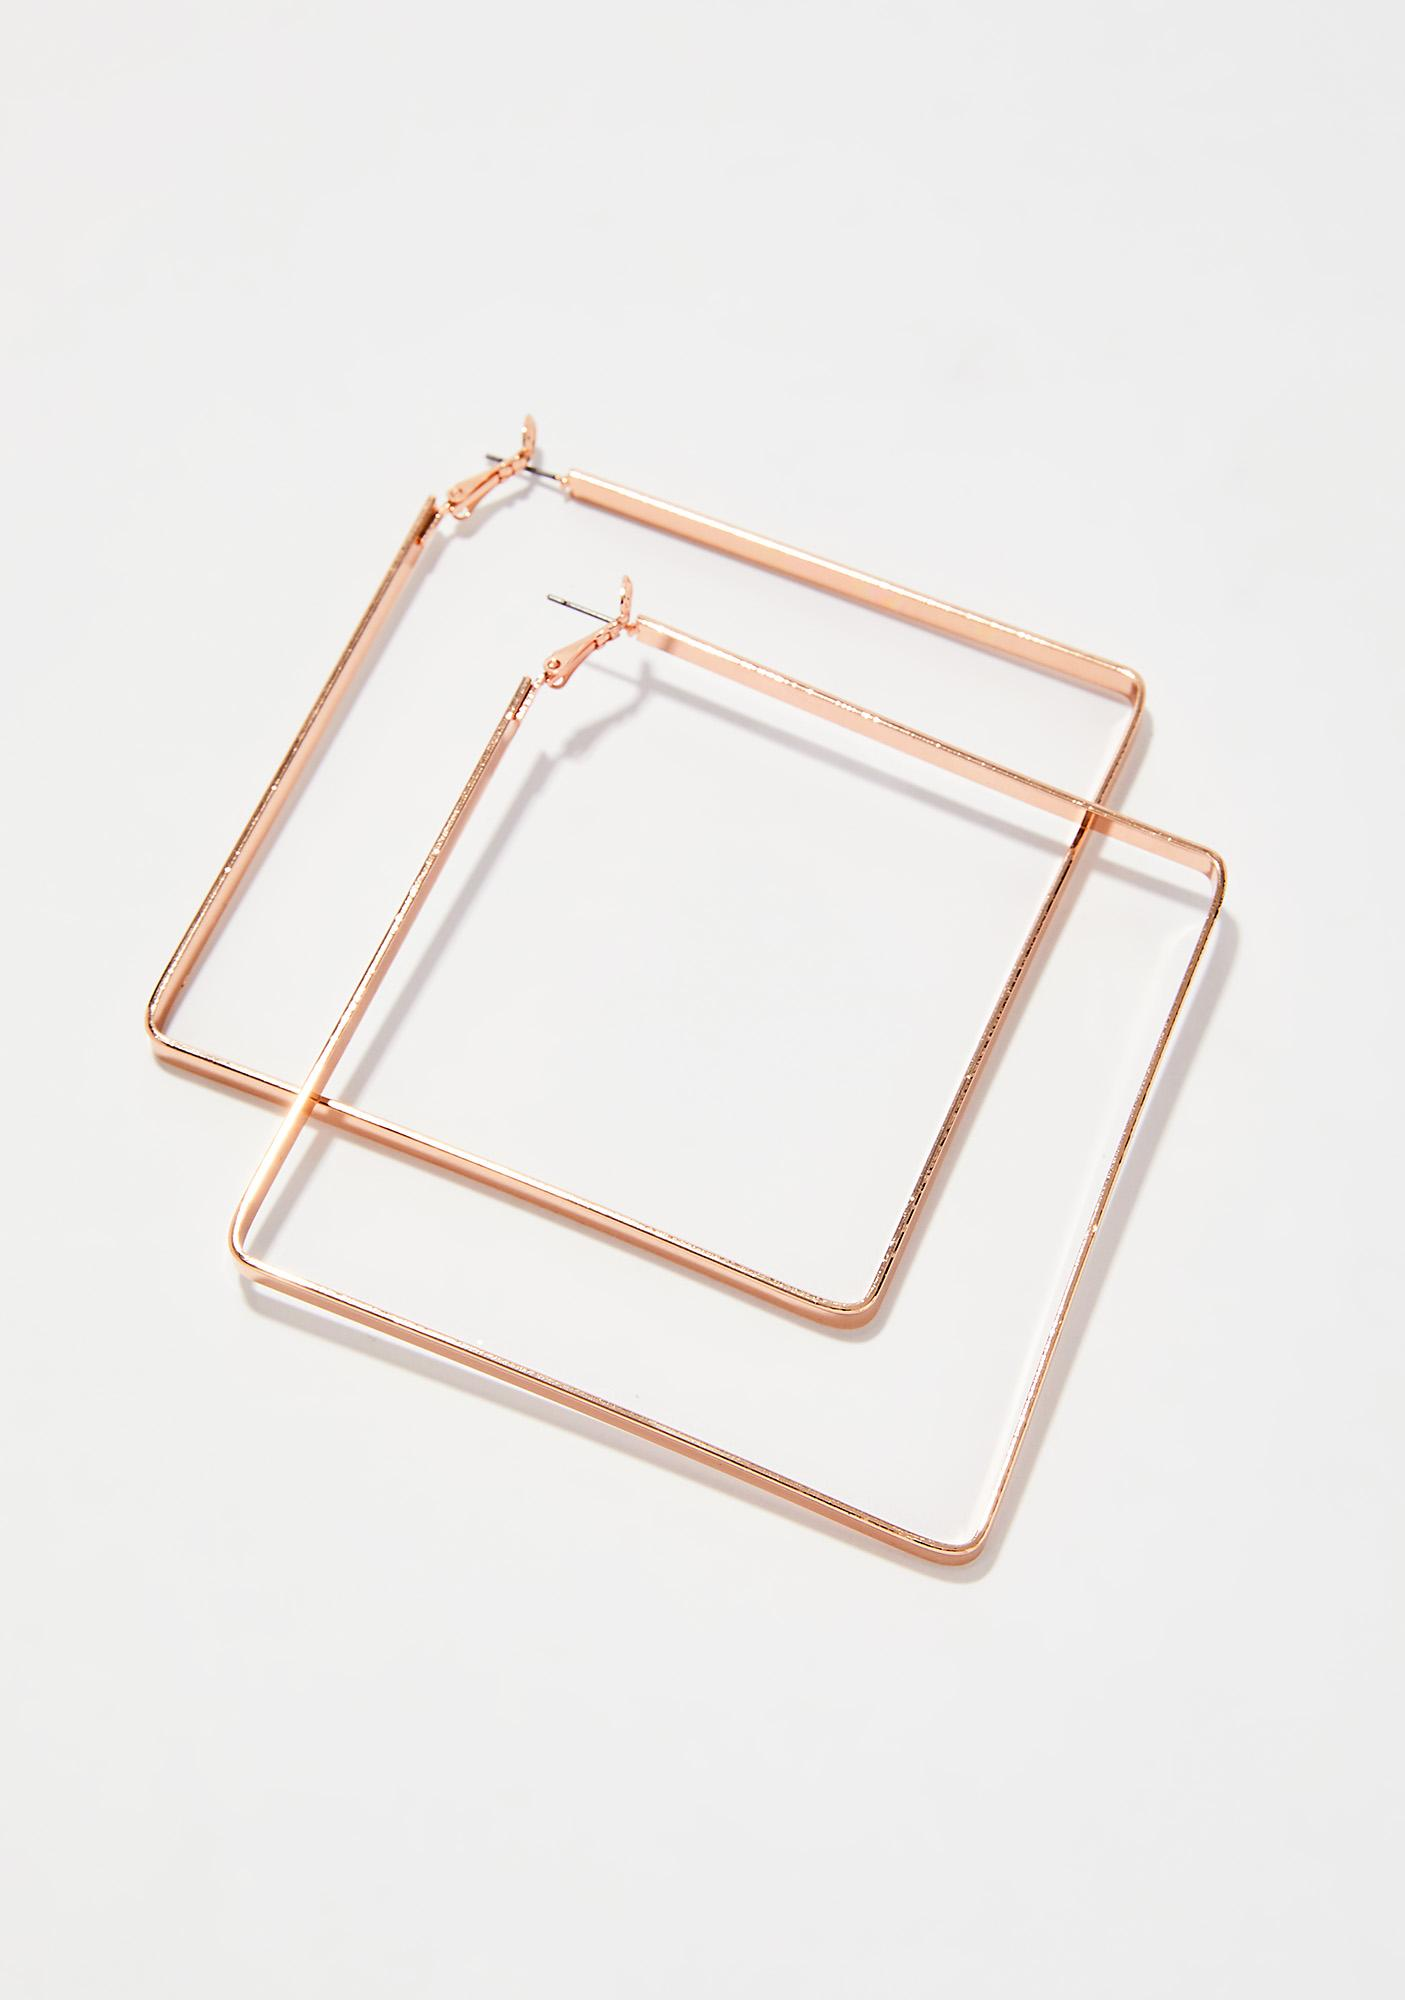 What's Your Angle Hoop Earrings